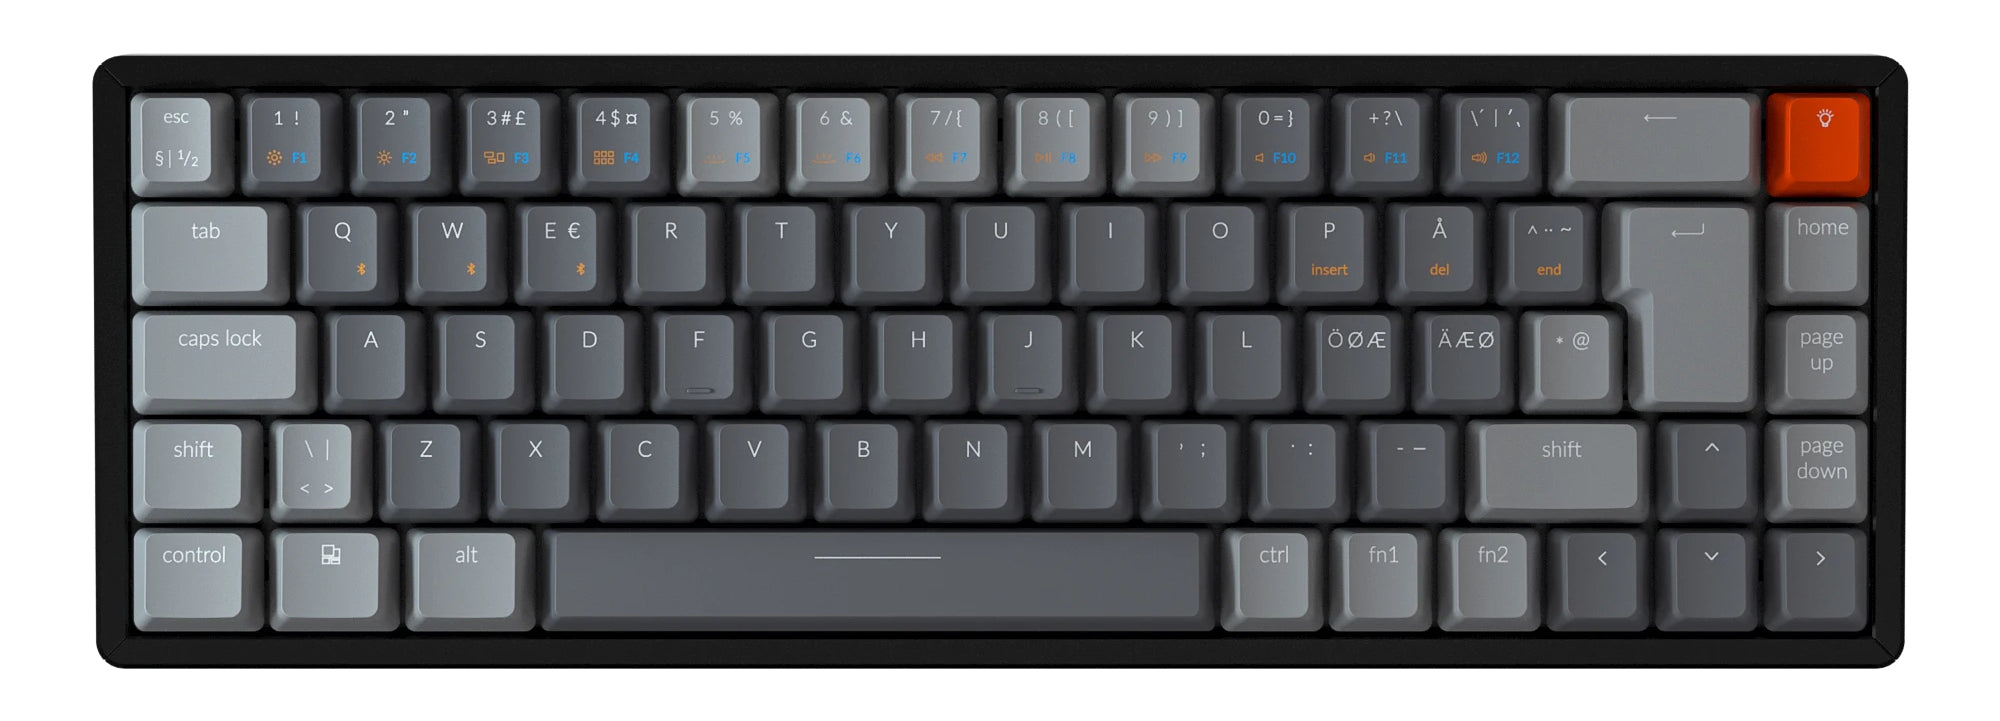 Keychron K6 65 percent compact wireless mechanical keyboard for Mac Windows iPad tablet Nordic layout Gateron mechanical brown switch with RGB backlight